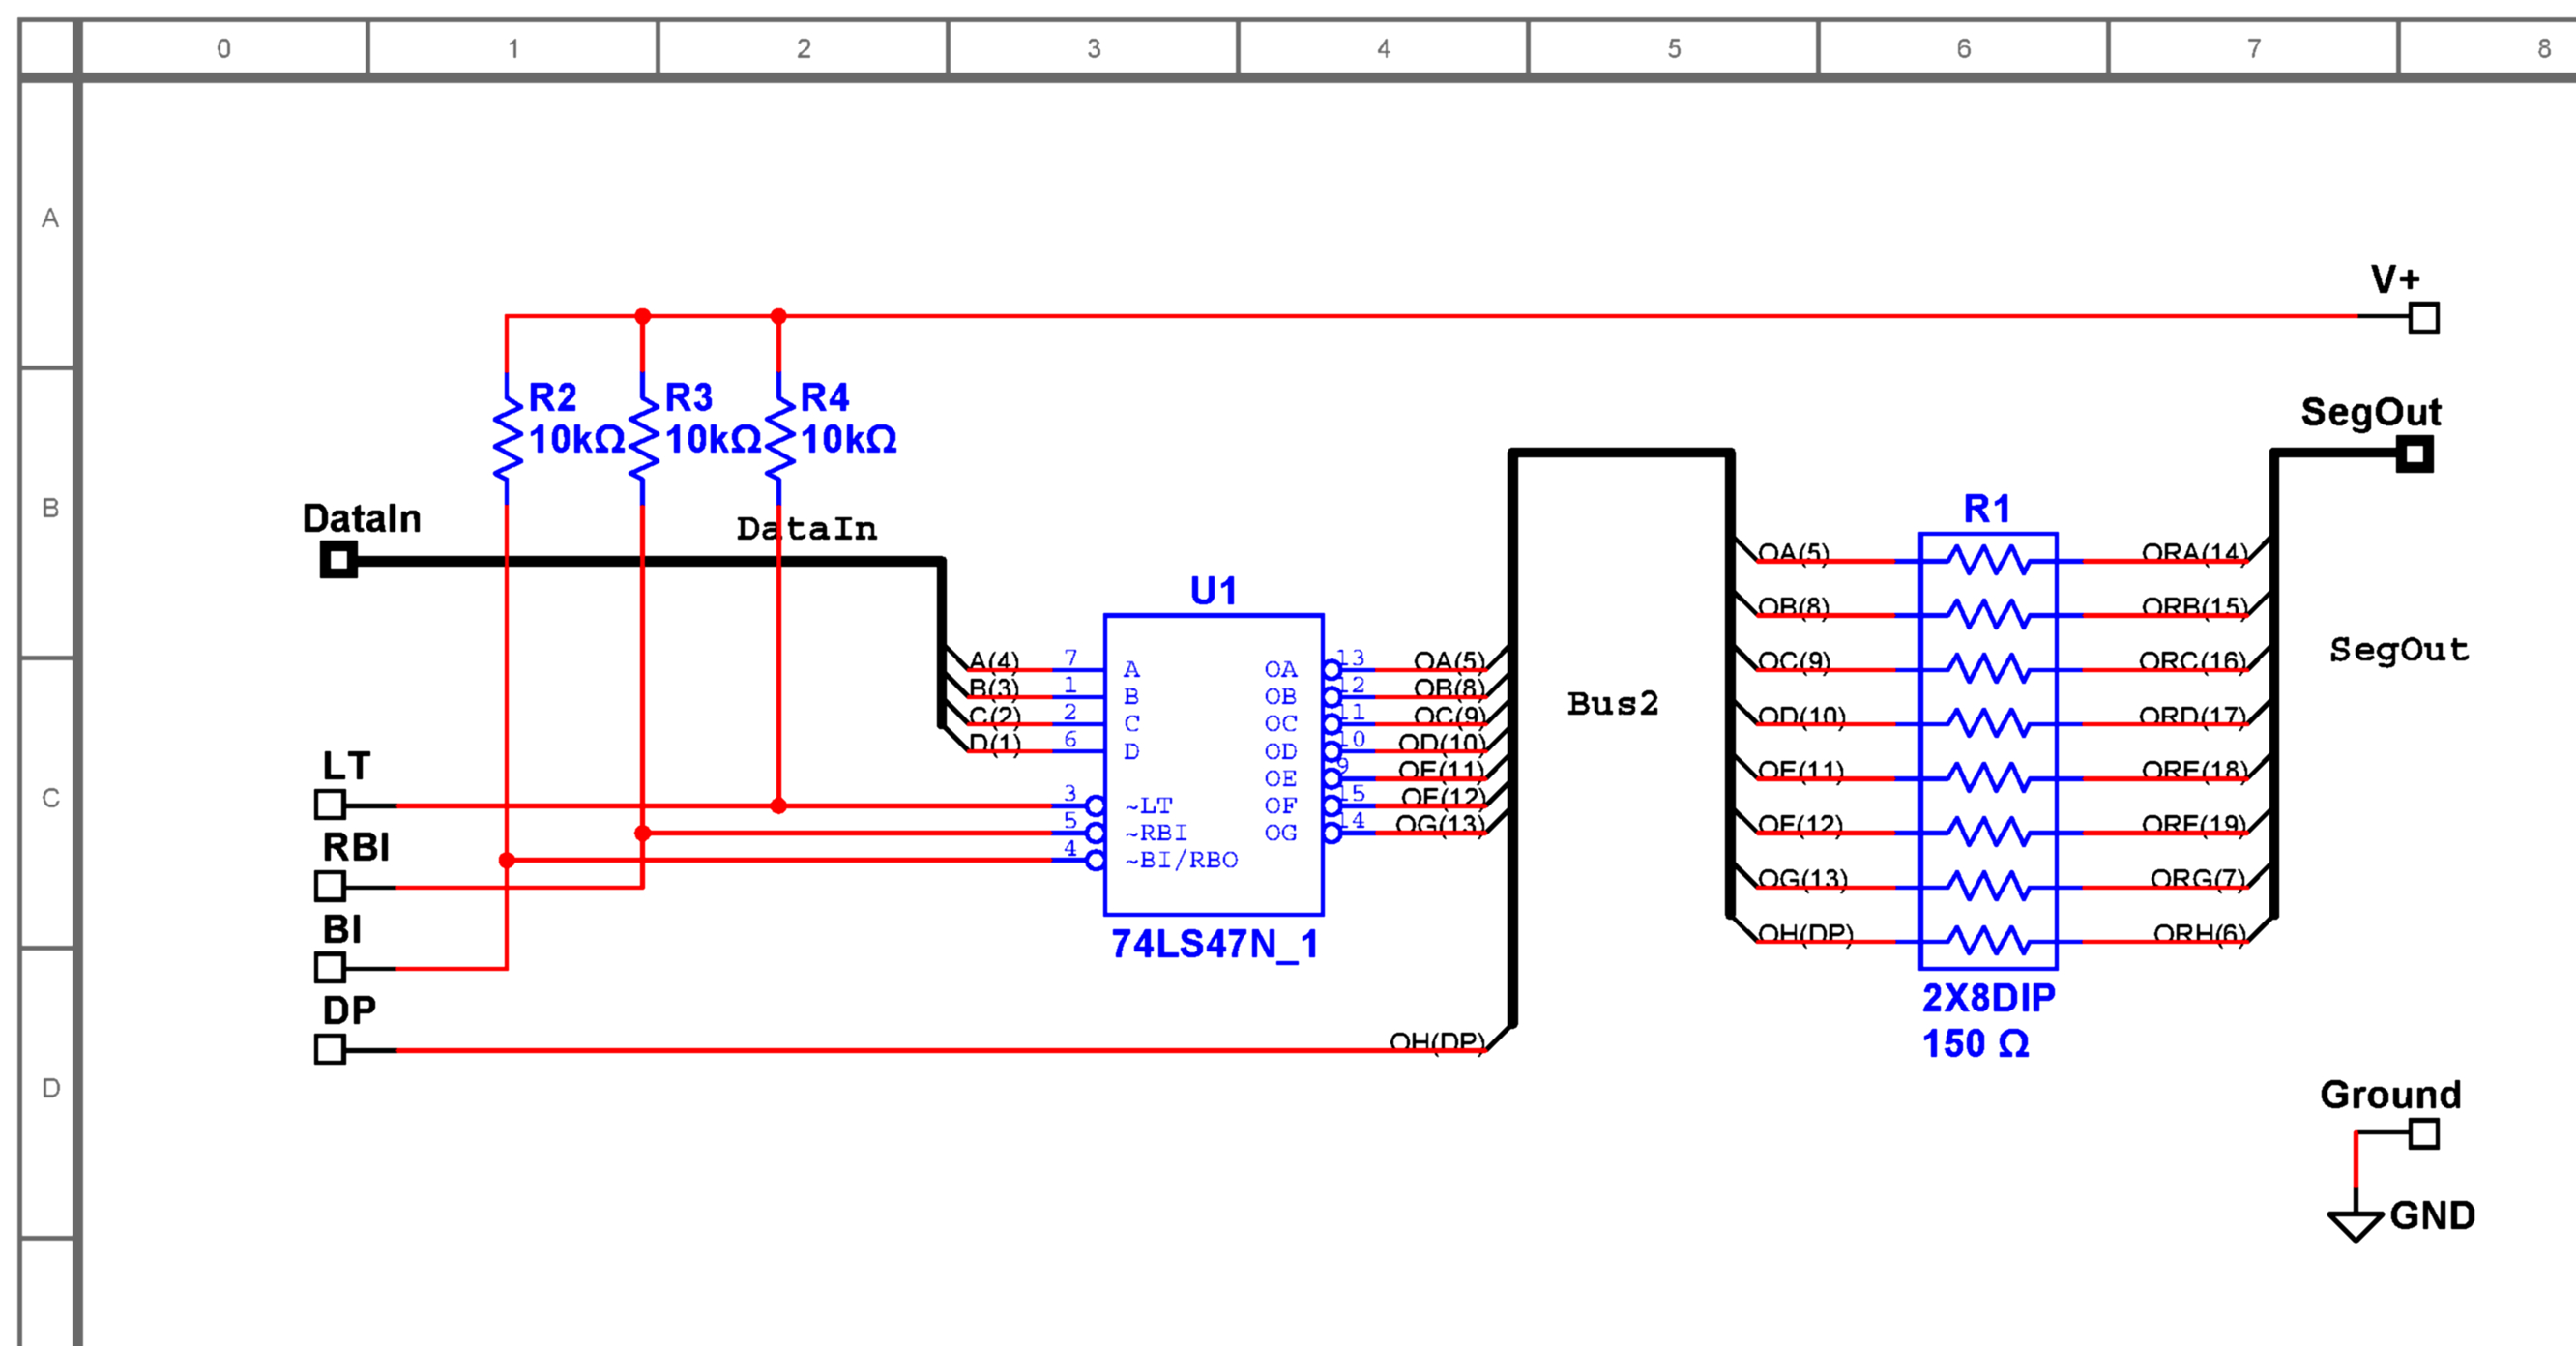 heidenhain encoder wiring diagram Collection-Heidenhain Encoder Wiring Diagram Fresh Ponent Decoder In Digital Electronics Circuit Ecen Intro to 9-i